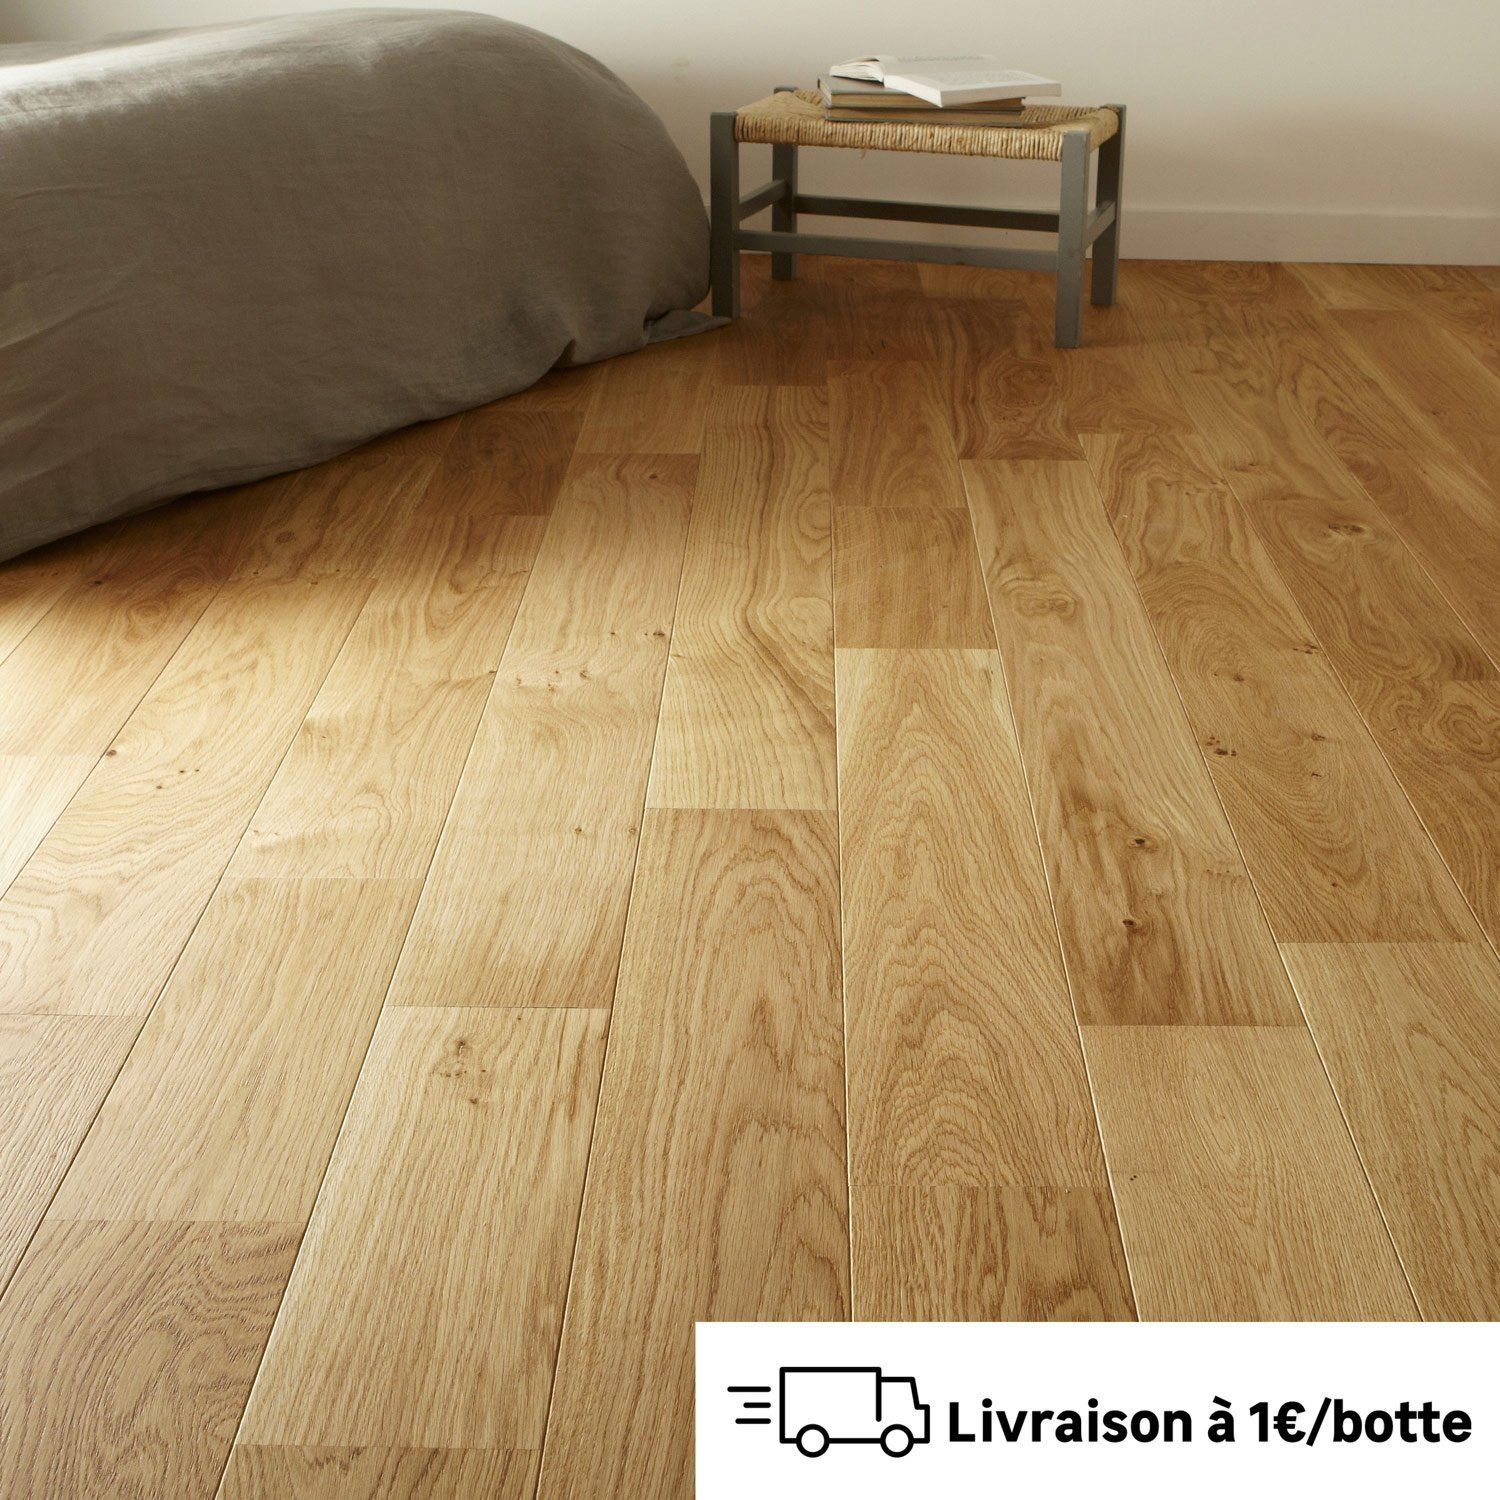 Passage Important Couple Avec Un Enfant Bedroom Flooring Flooring Parquet